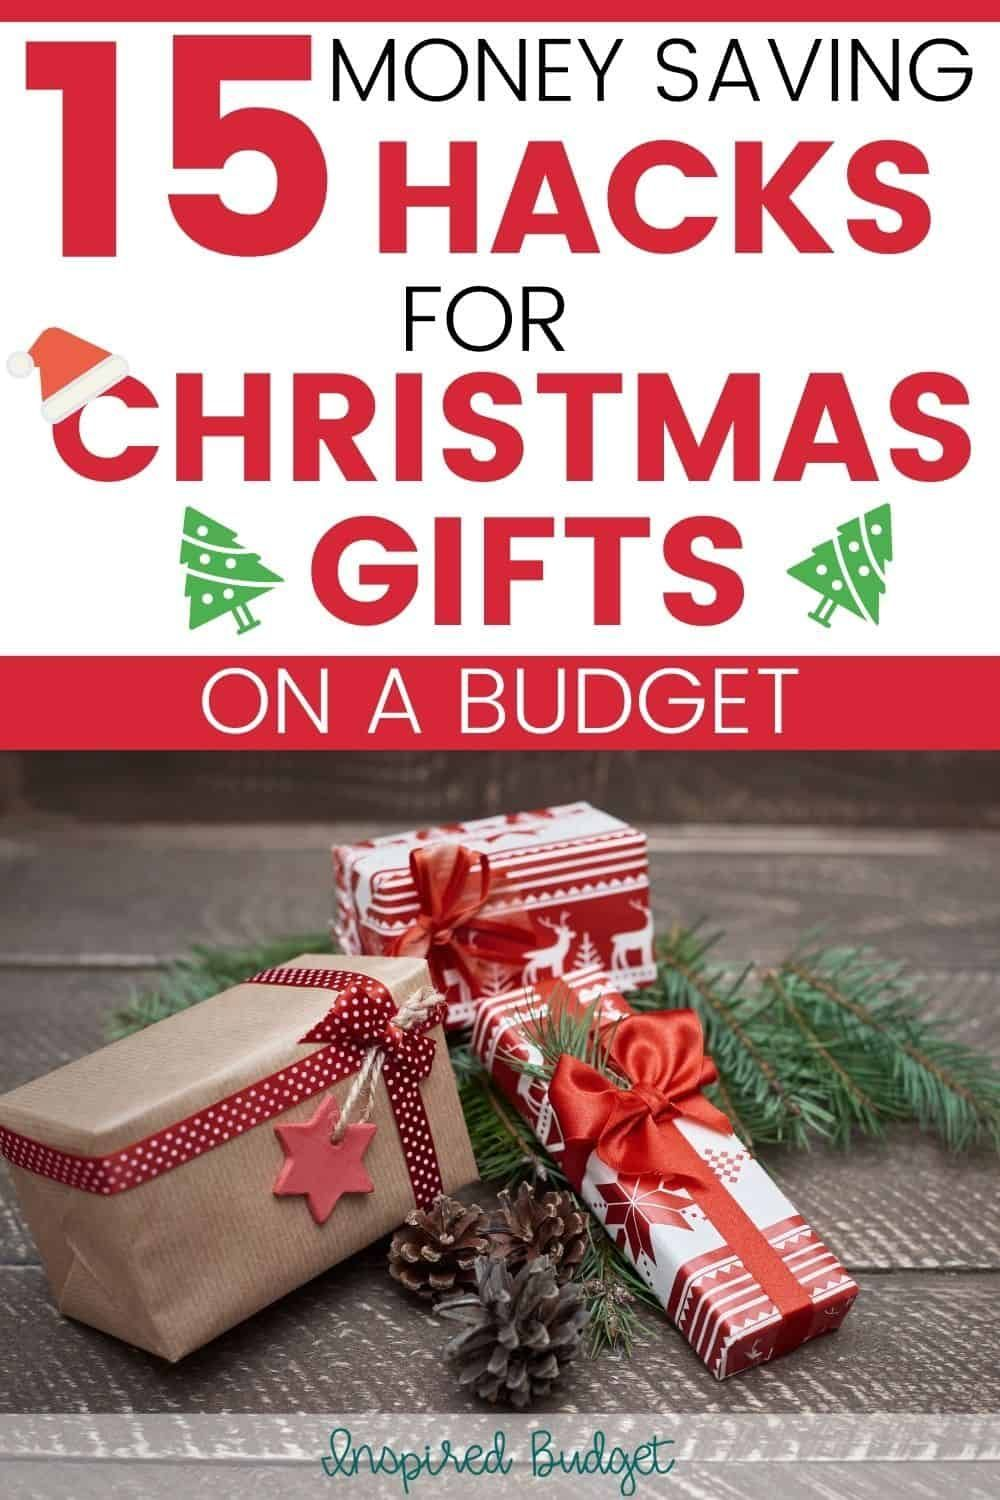 Christmas Gifts On A Budget Ideas And Hacks Inspired Budget In 2020 Budgeting Money Saving Plan Saving Money